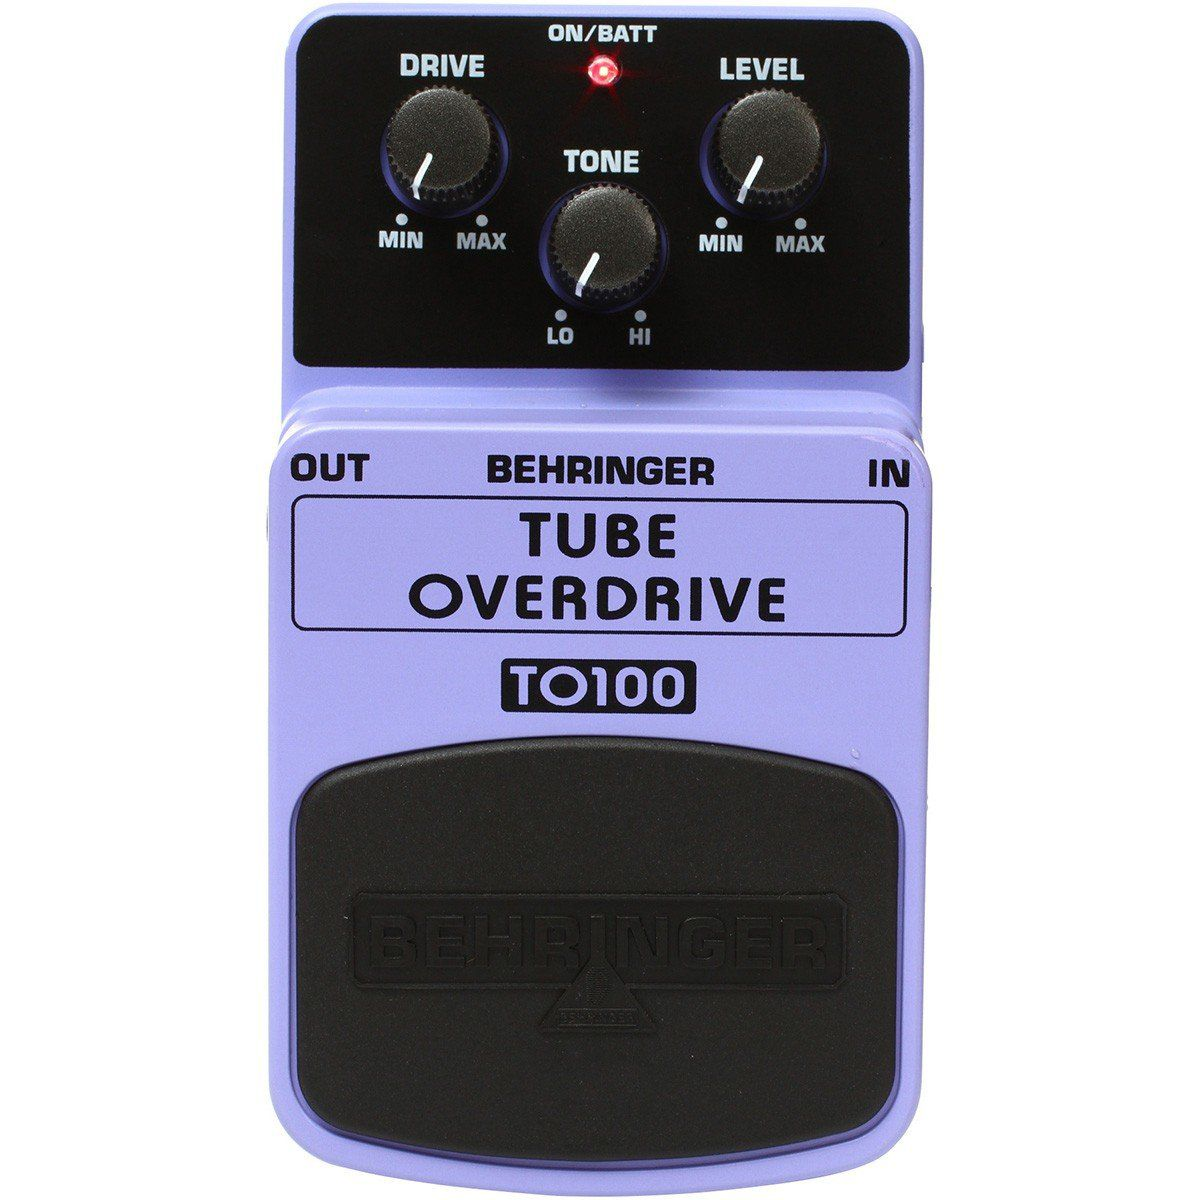 Behringer TO100 Tube Overdrive Pedal para Guitarras e Performances ao Vivo